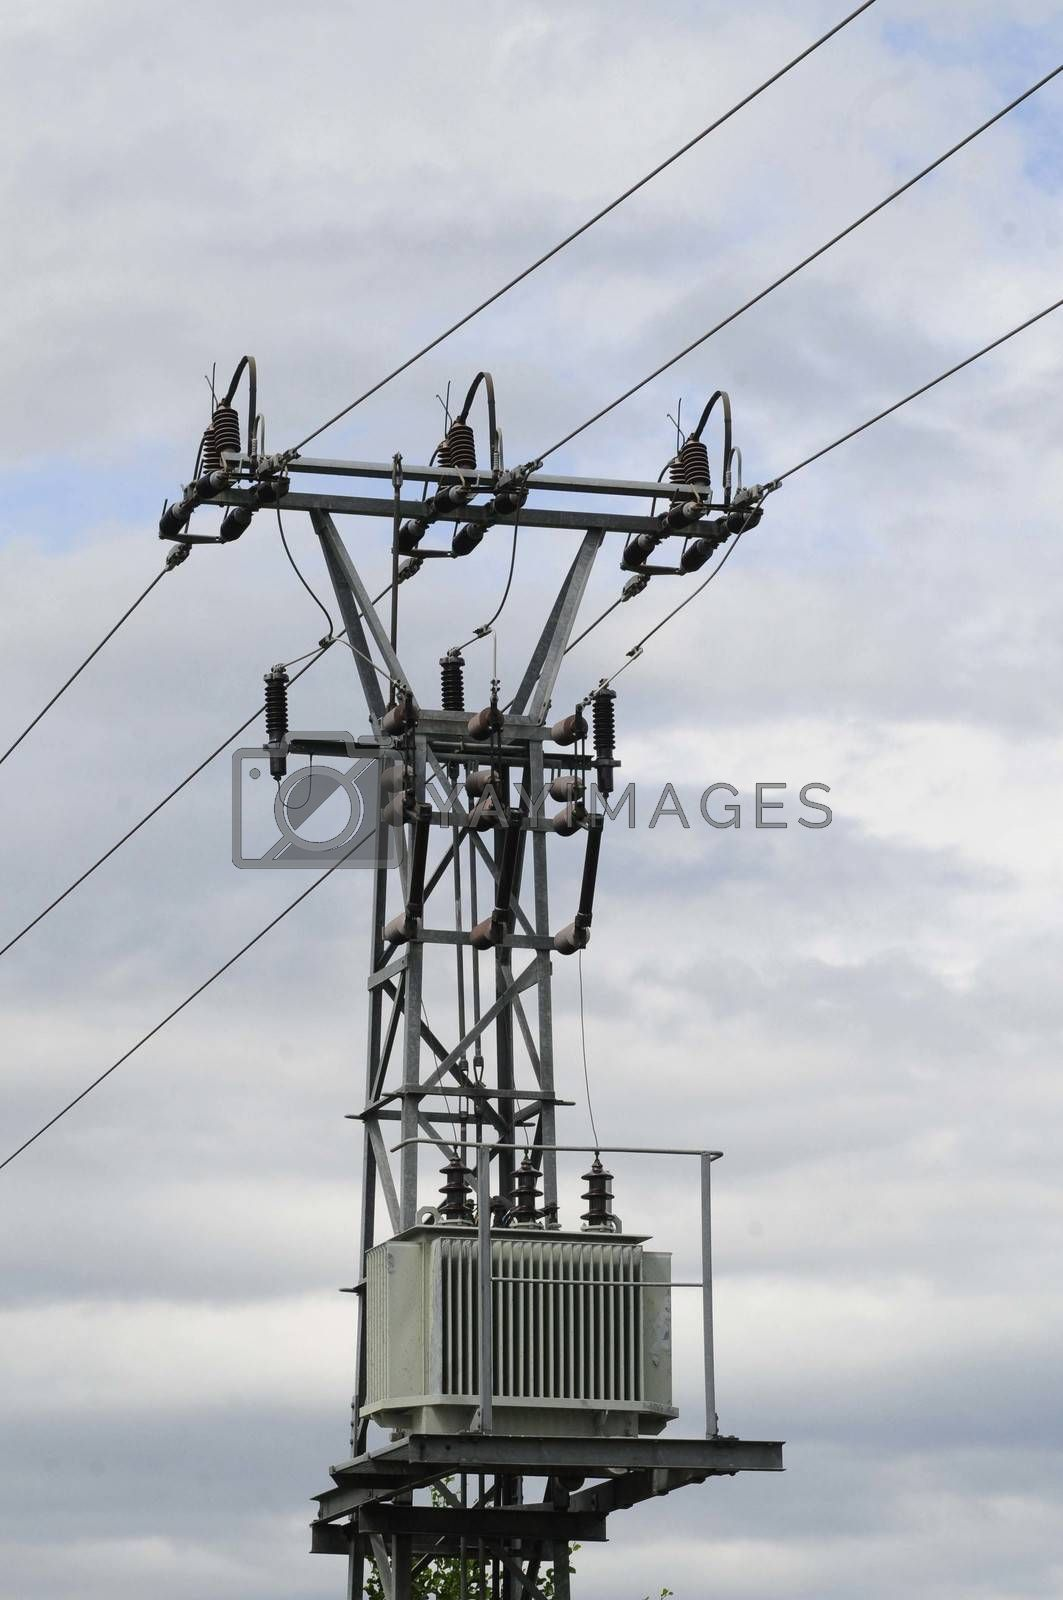 an electricity Transformer with a cloudy sky in the background